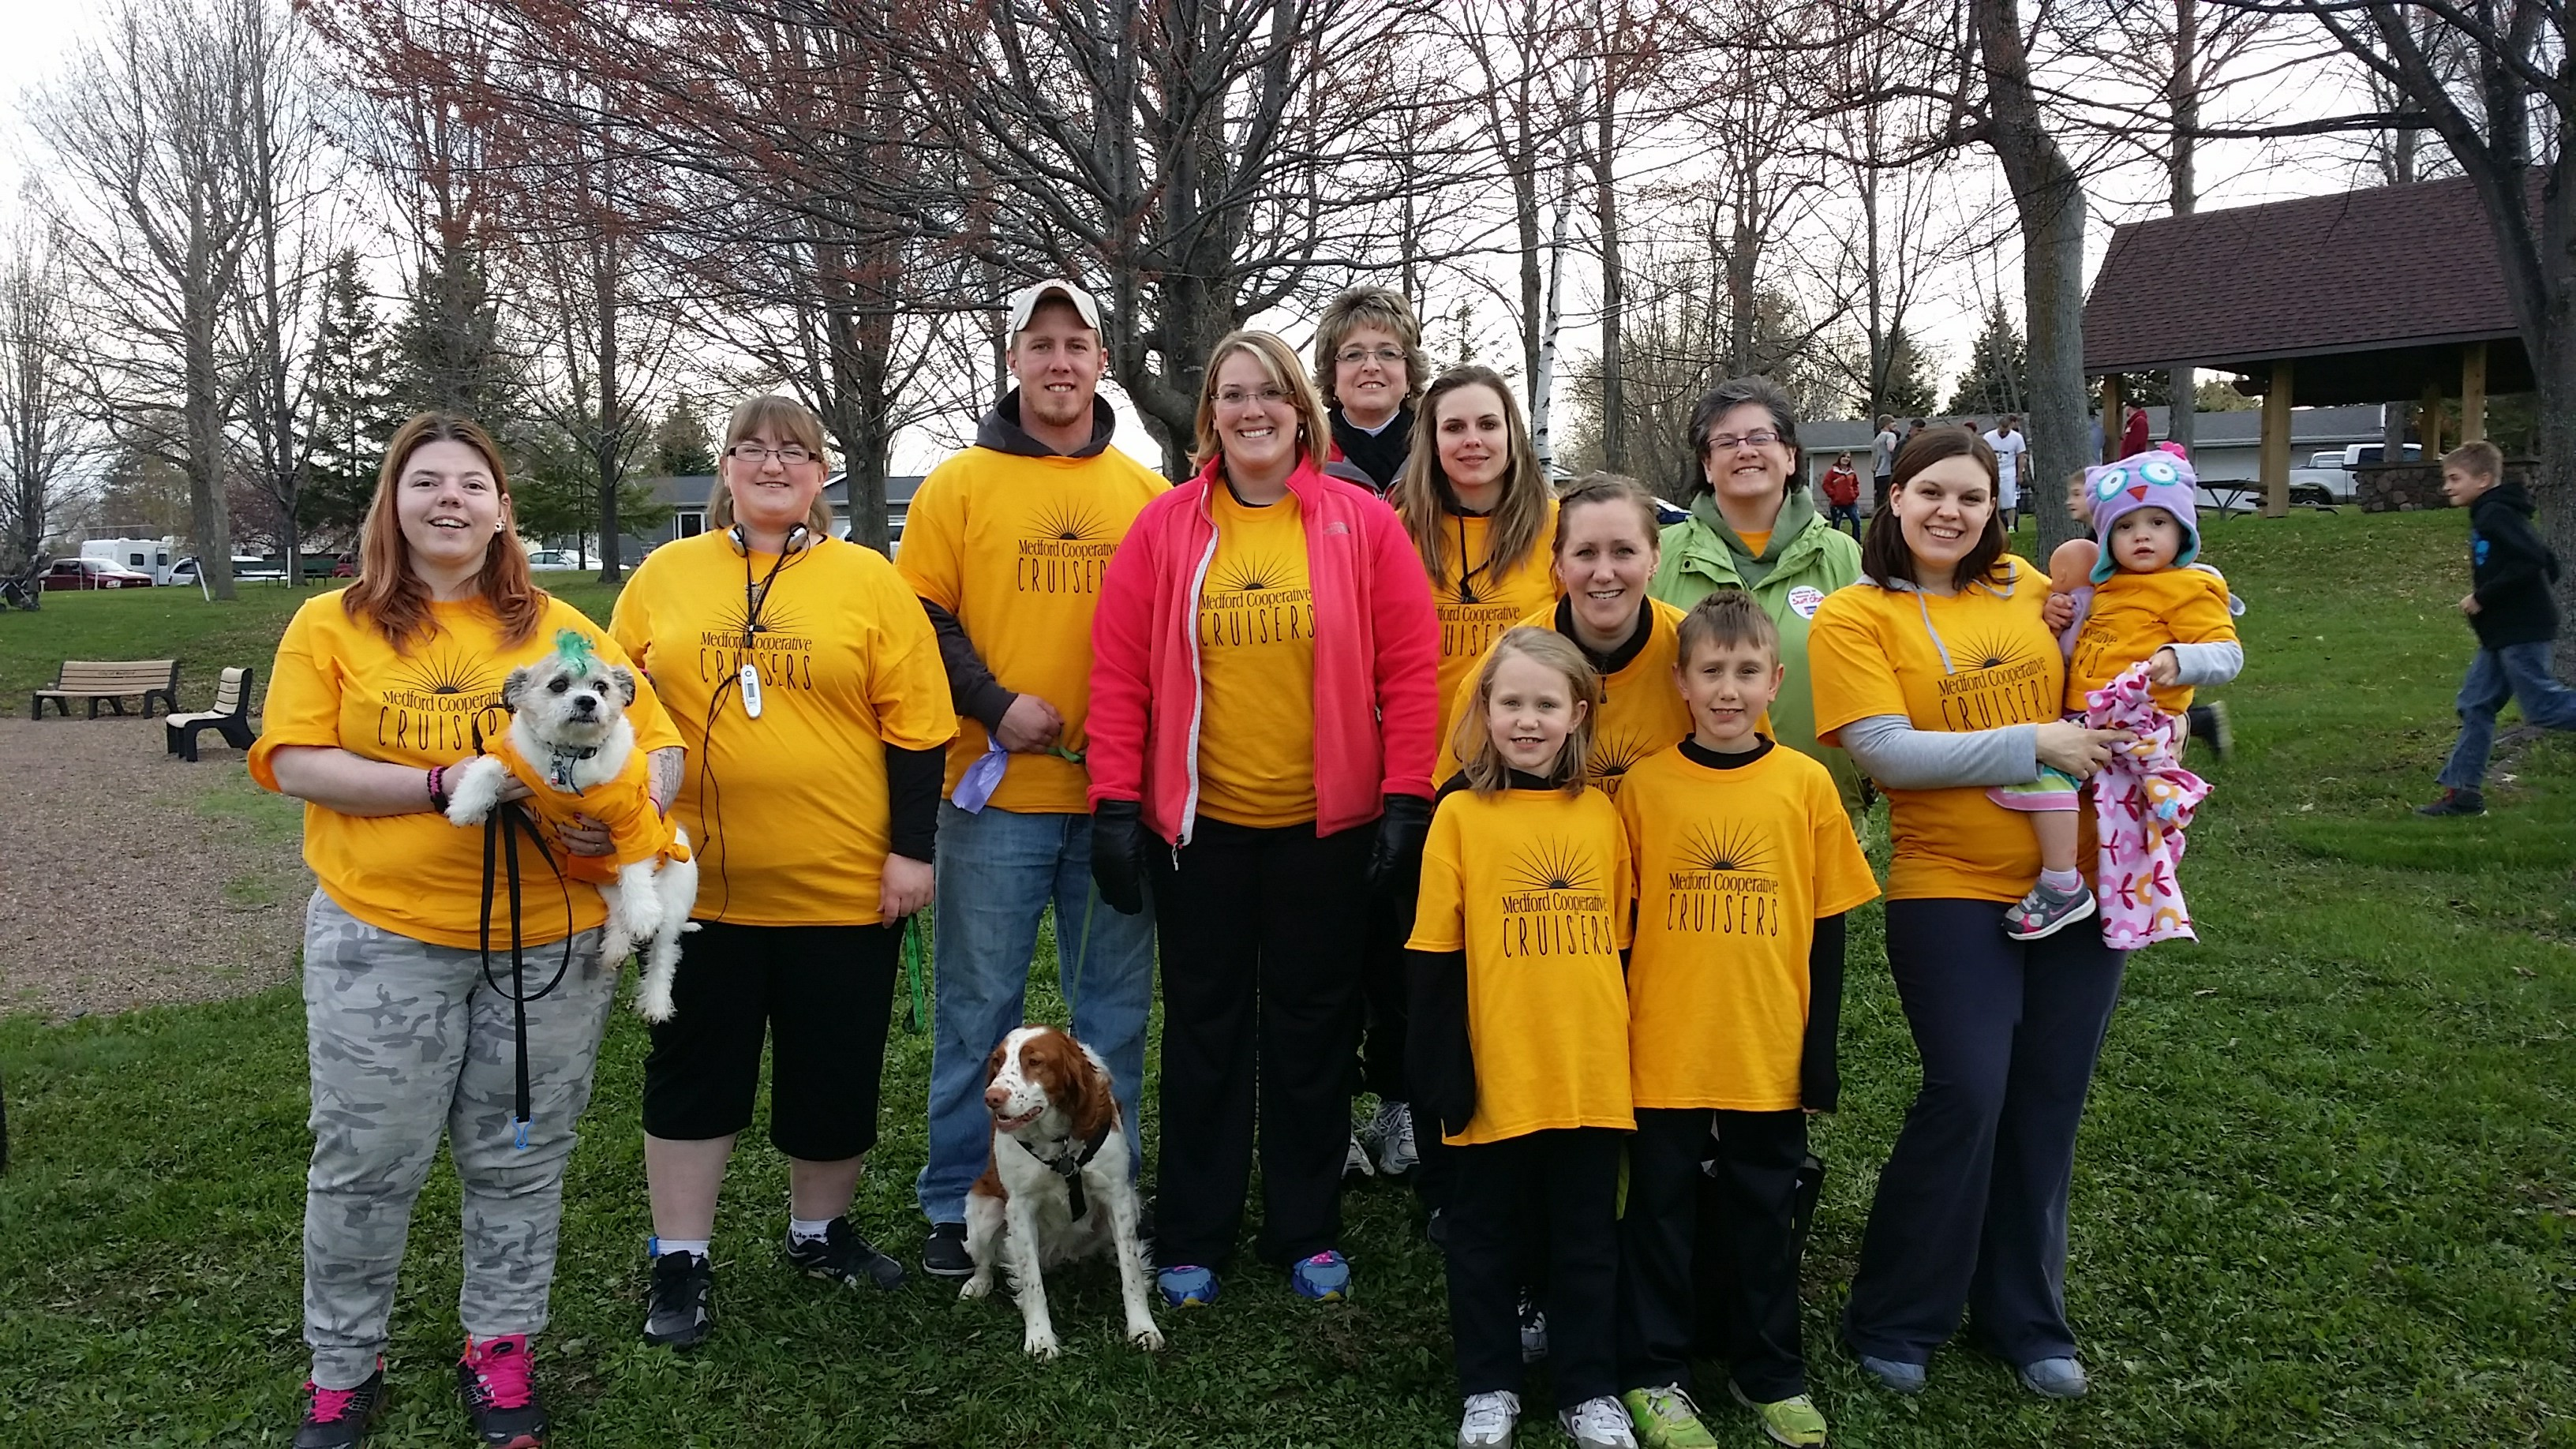 We Donated $837 to the American Cancer Society Walk/Run